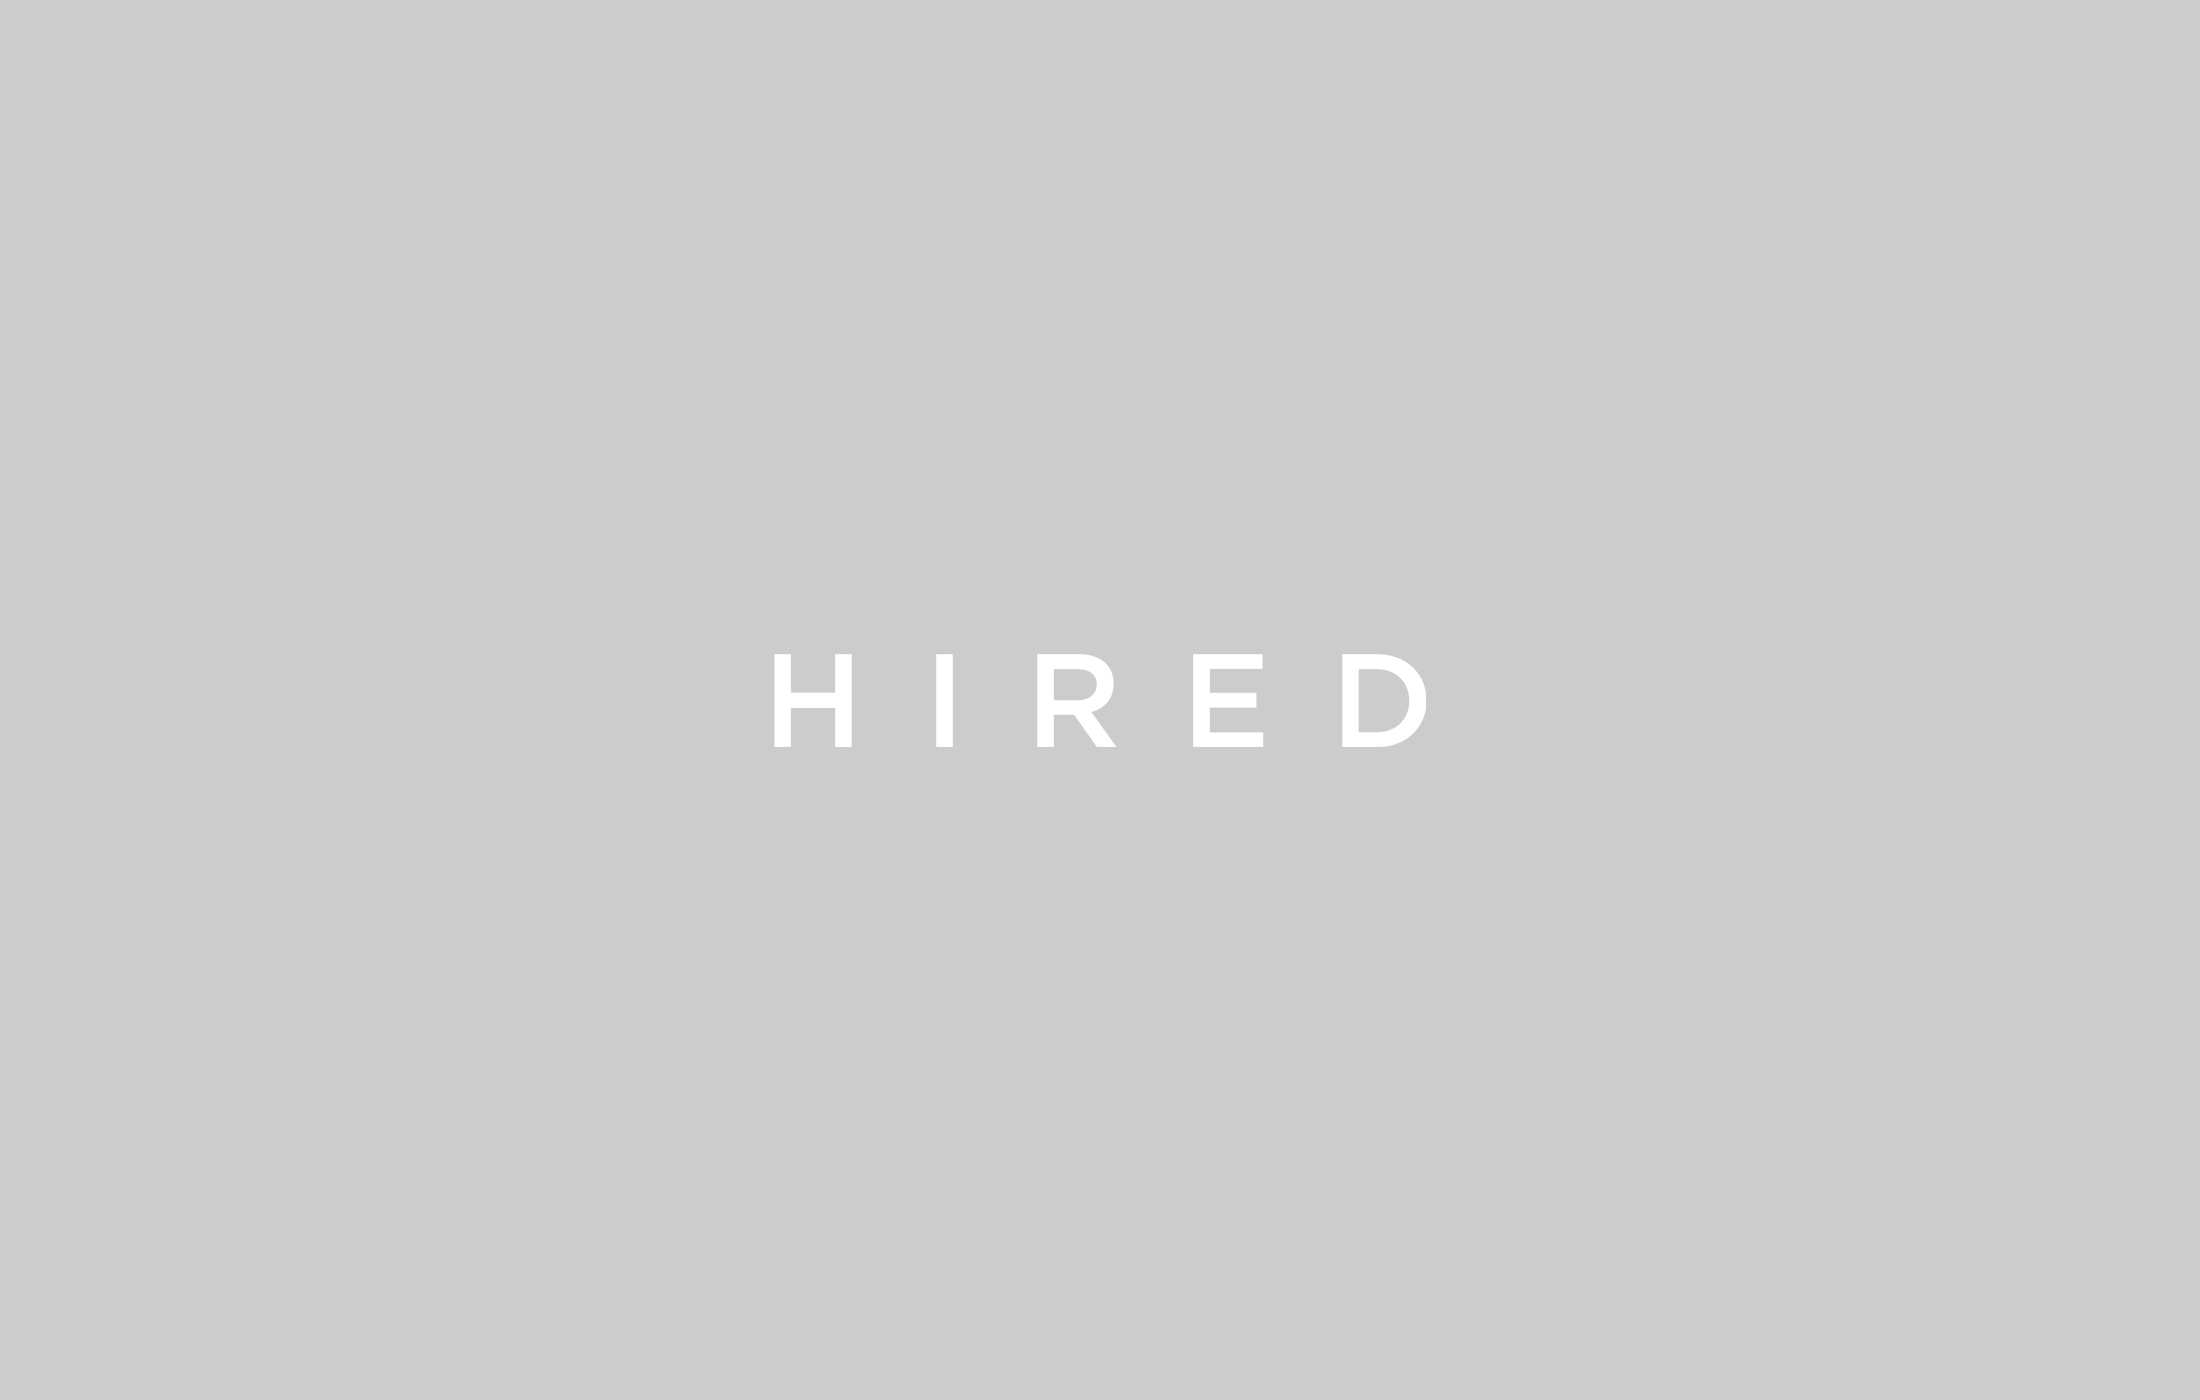 hired-releases-market-trends-report-quantifying-the-gender-gap-in-tech